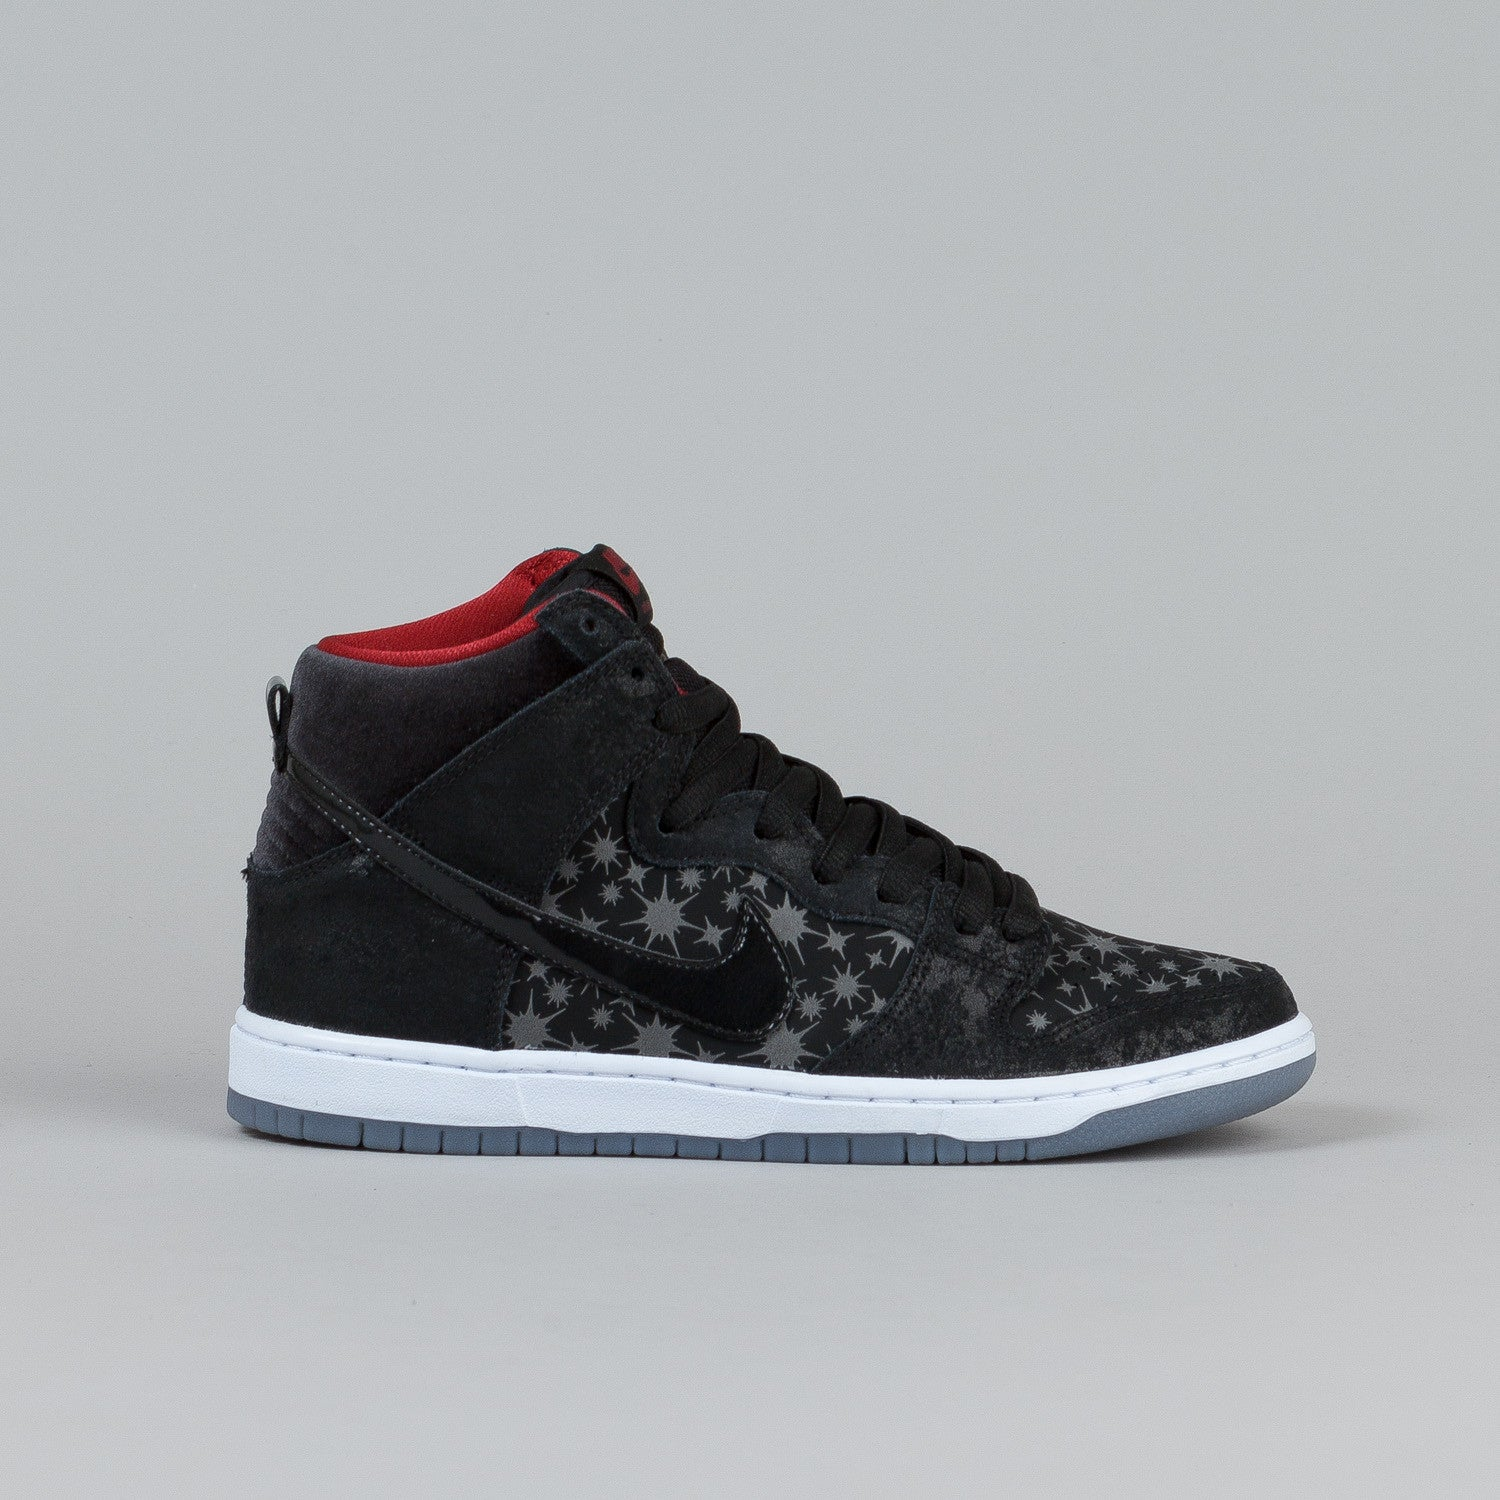 Nike SB Dunk High Premium Black / Black